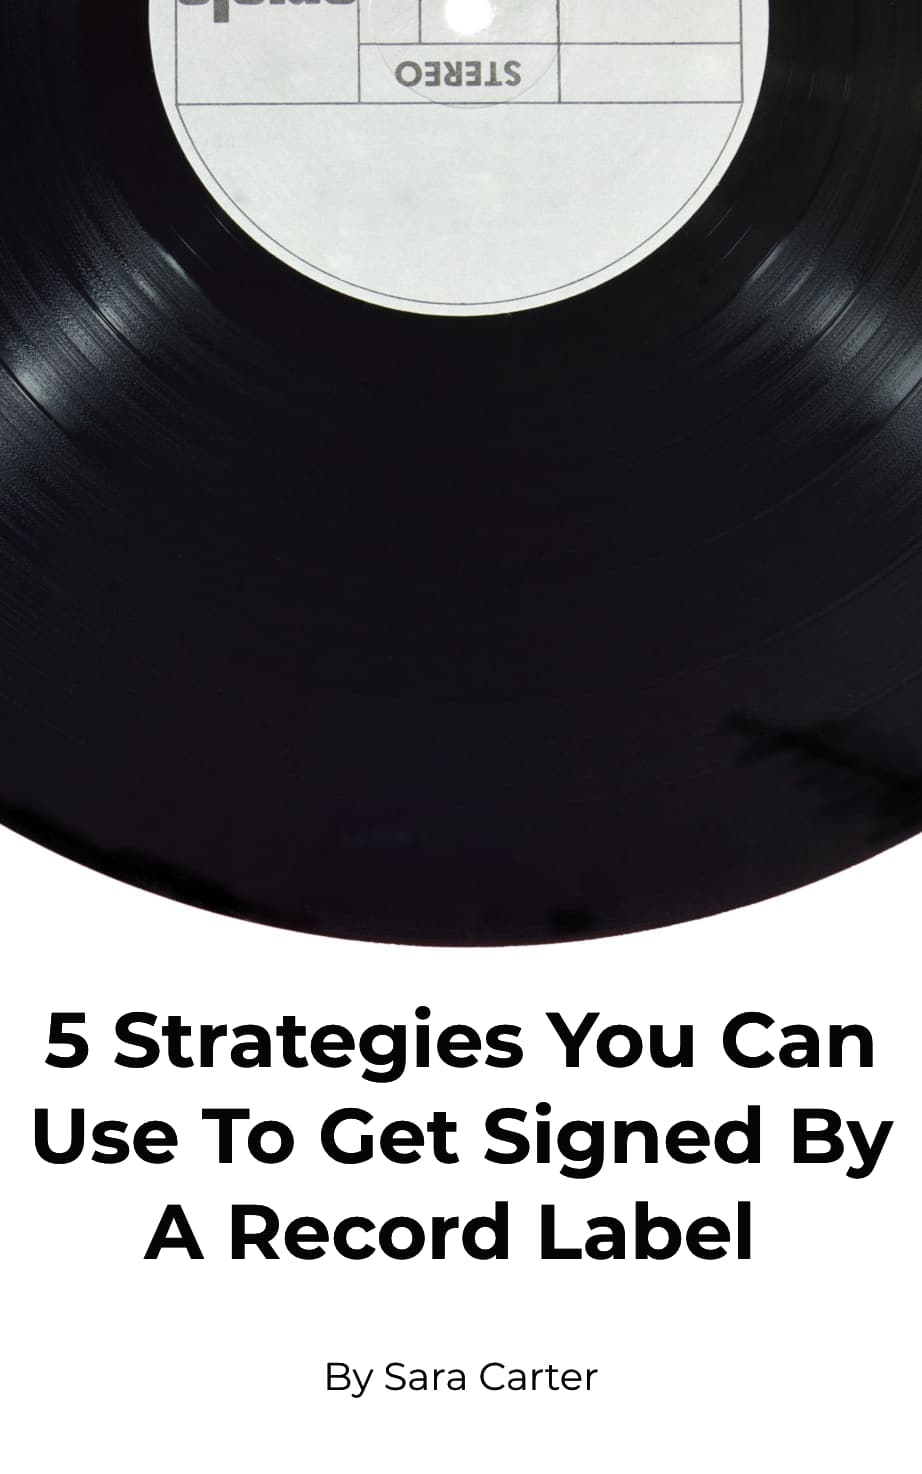 how to get signed by a record label